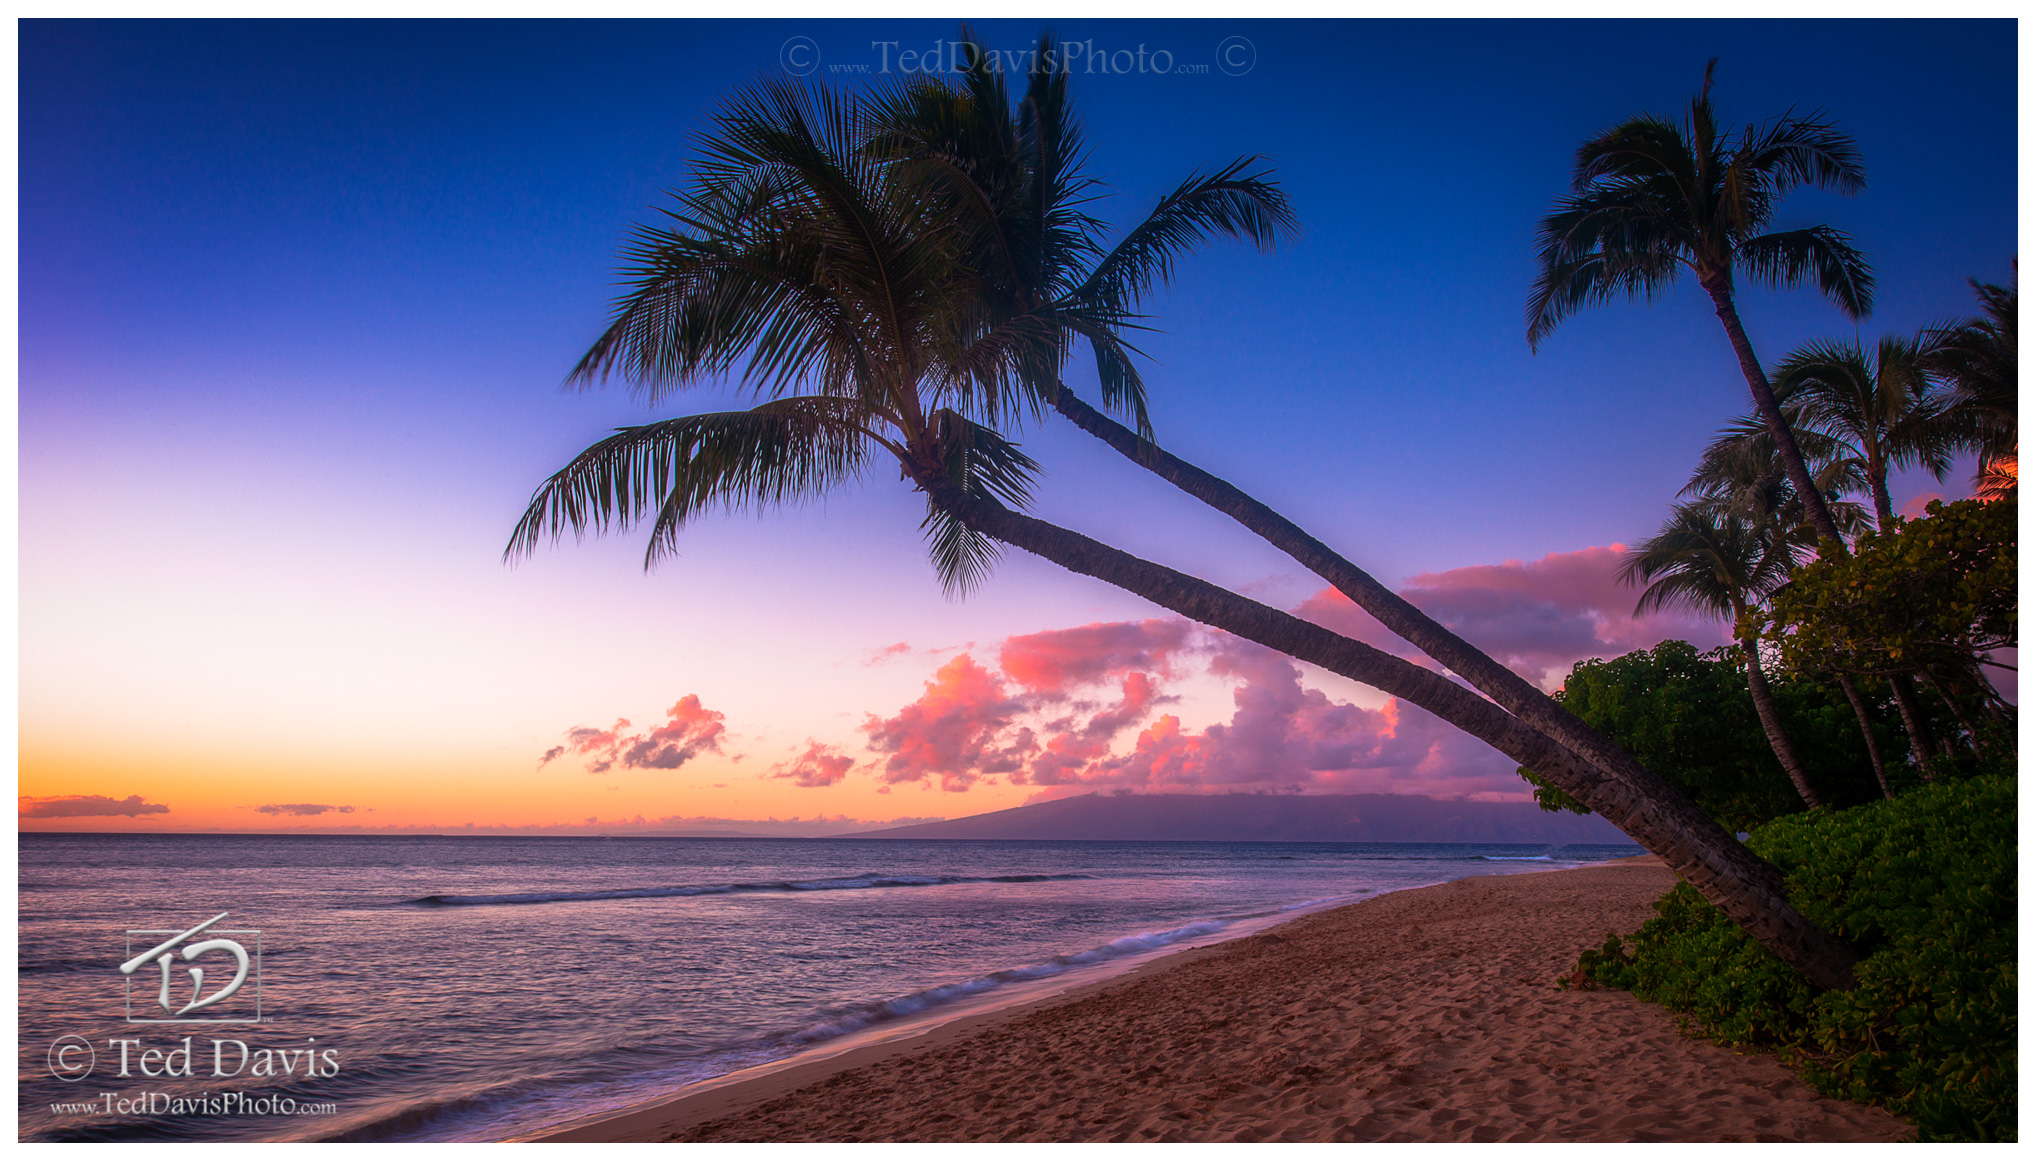 sun, setting, coast, Maui, Hawaii, evening, palms, sunset, shoreline, calmness, glow, clouds, ocean, photo